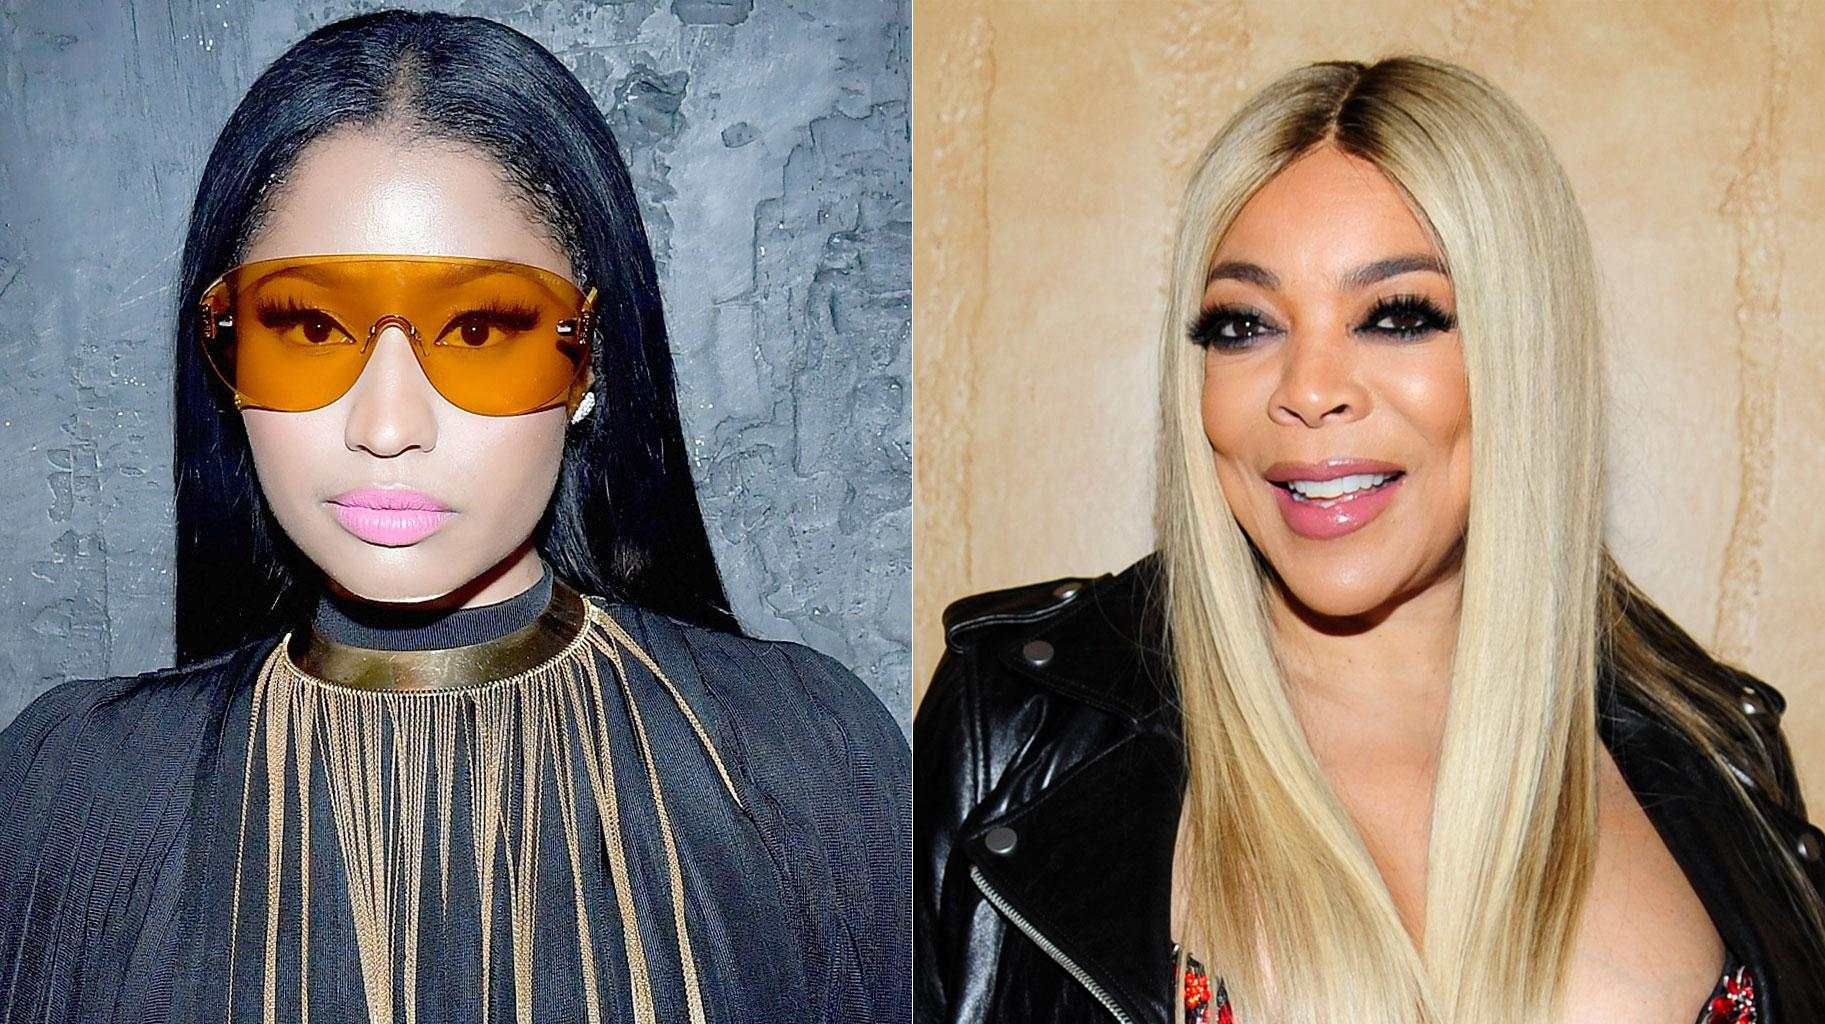 Nicki Minaj Suggests She Has More Shade To Throw At Wendy Williams On Her Queen Radio Show - 'Stay Tuned!'